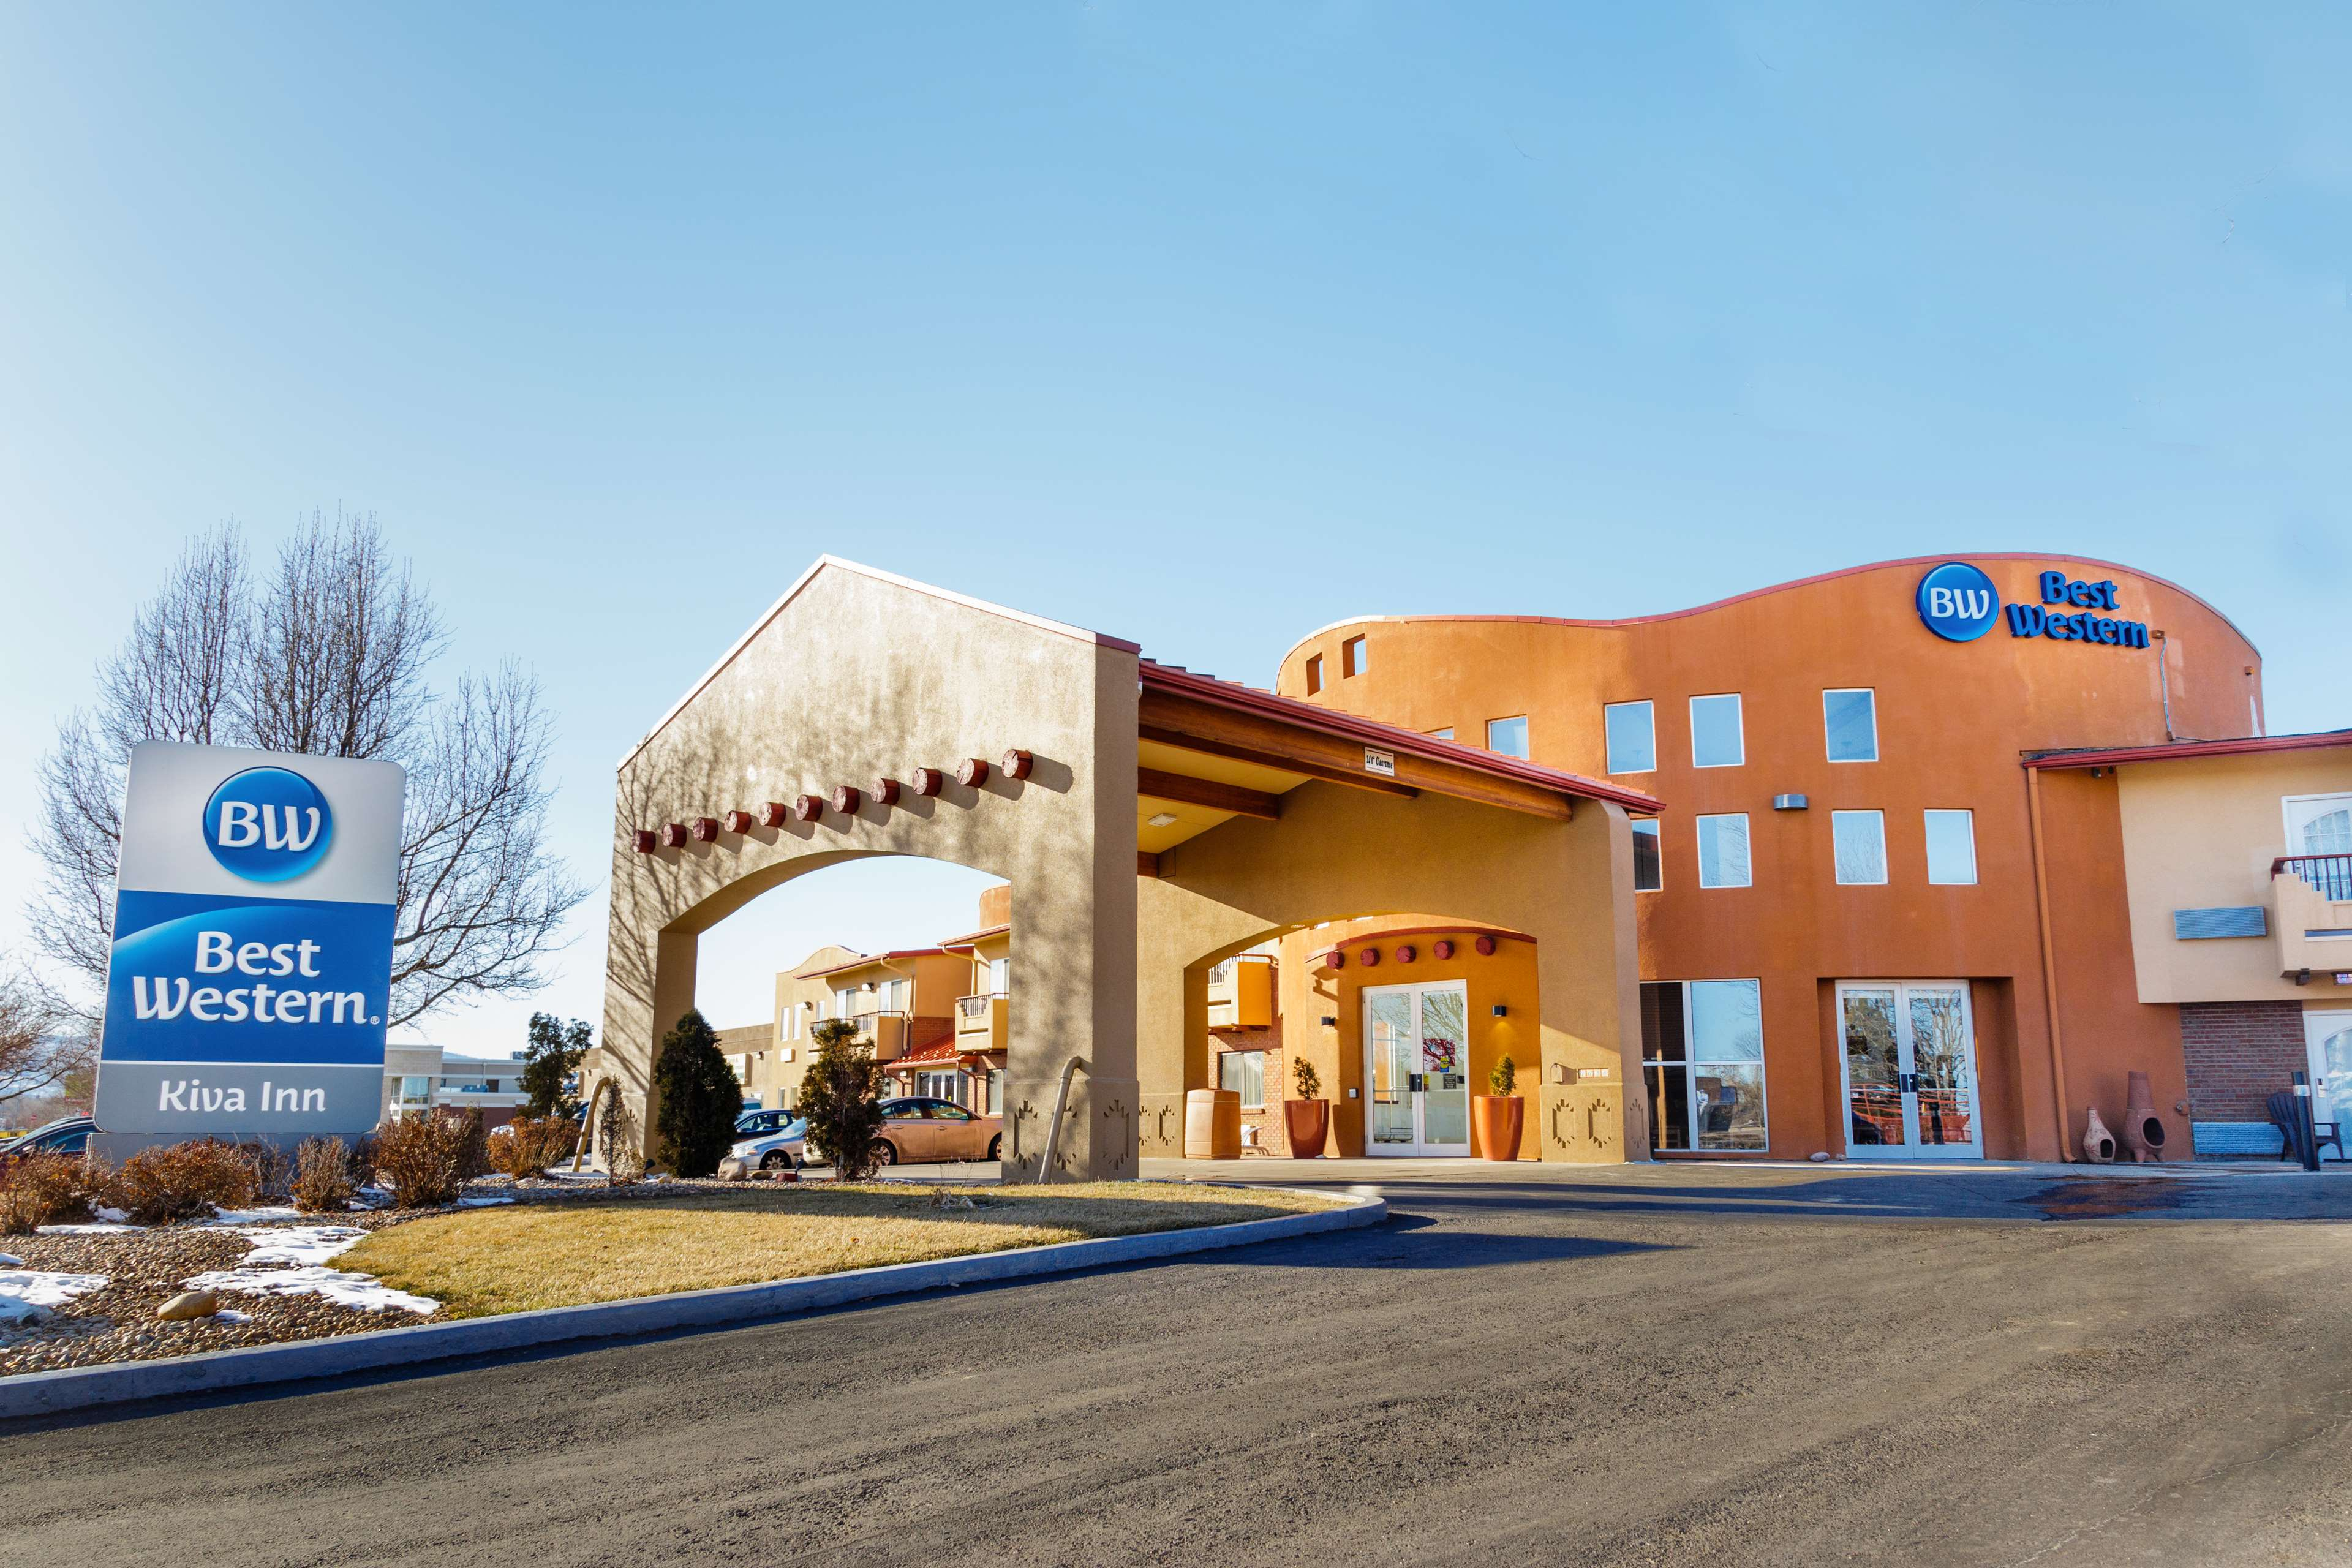 Best western kiva inn in fort collins co 80524 for Cabin rentals near fort collins colorado